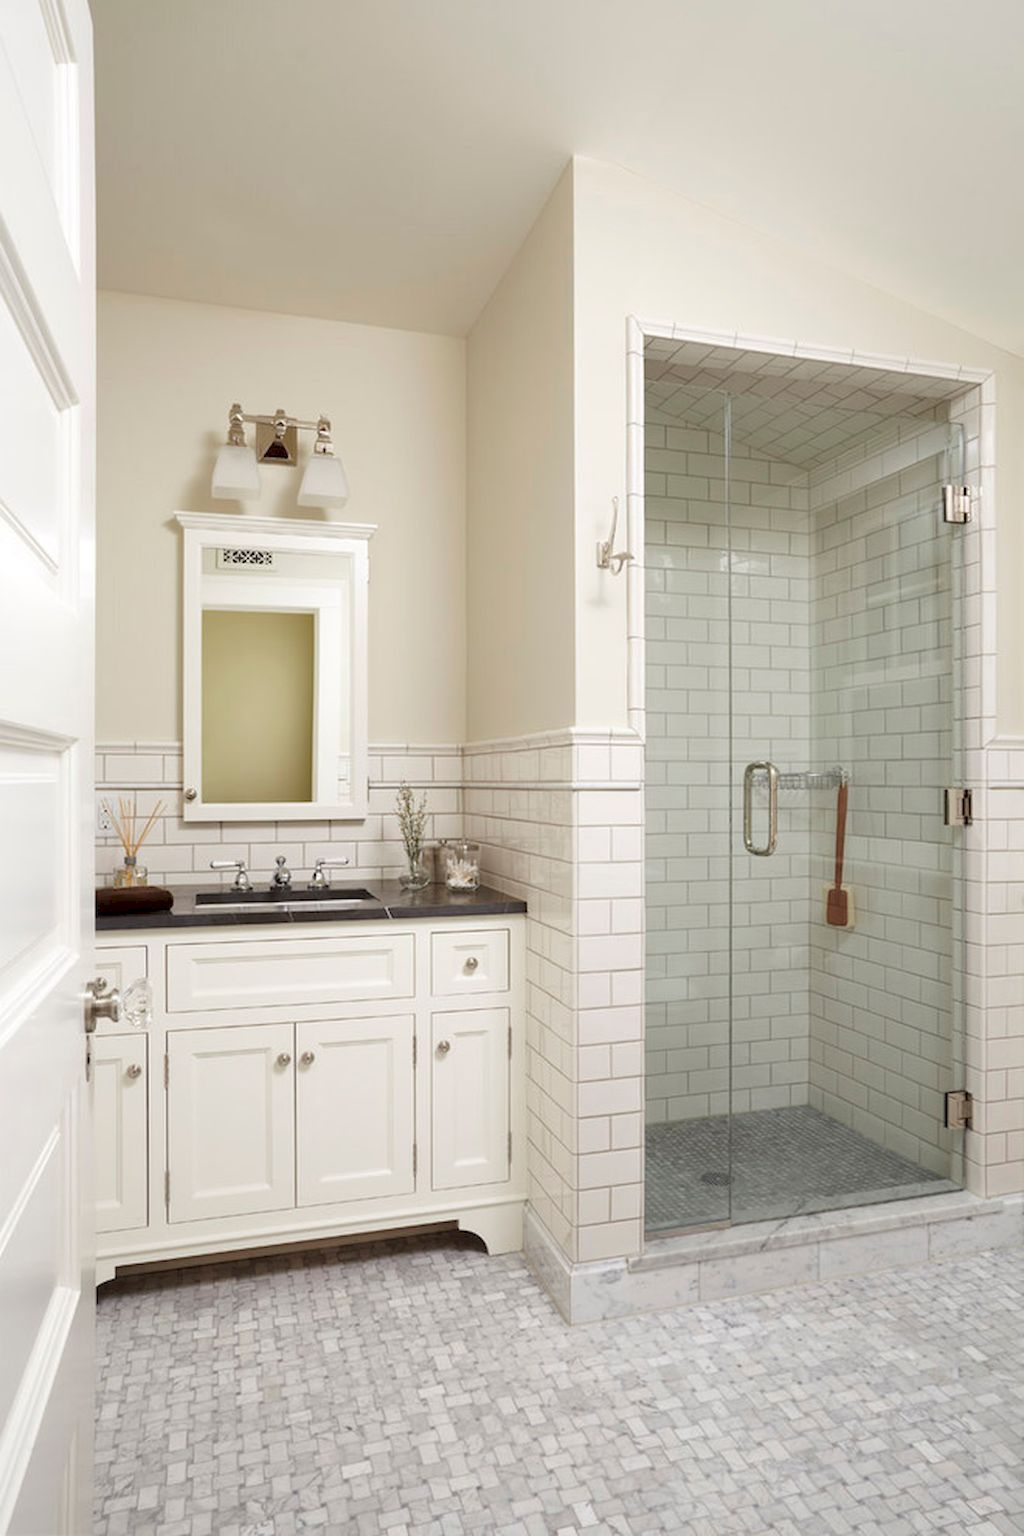 100 Best Farmhouse Bathroom Tile Shower Decor Ideas And Remodel To Inspiring Your Bathroom 95 Classic Bathroom Classic White Bathrooms Classic Bathroom Design